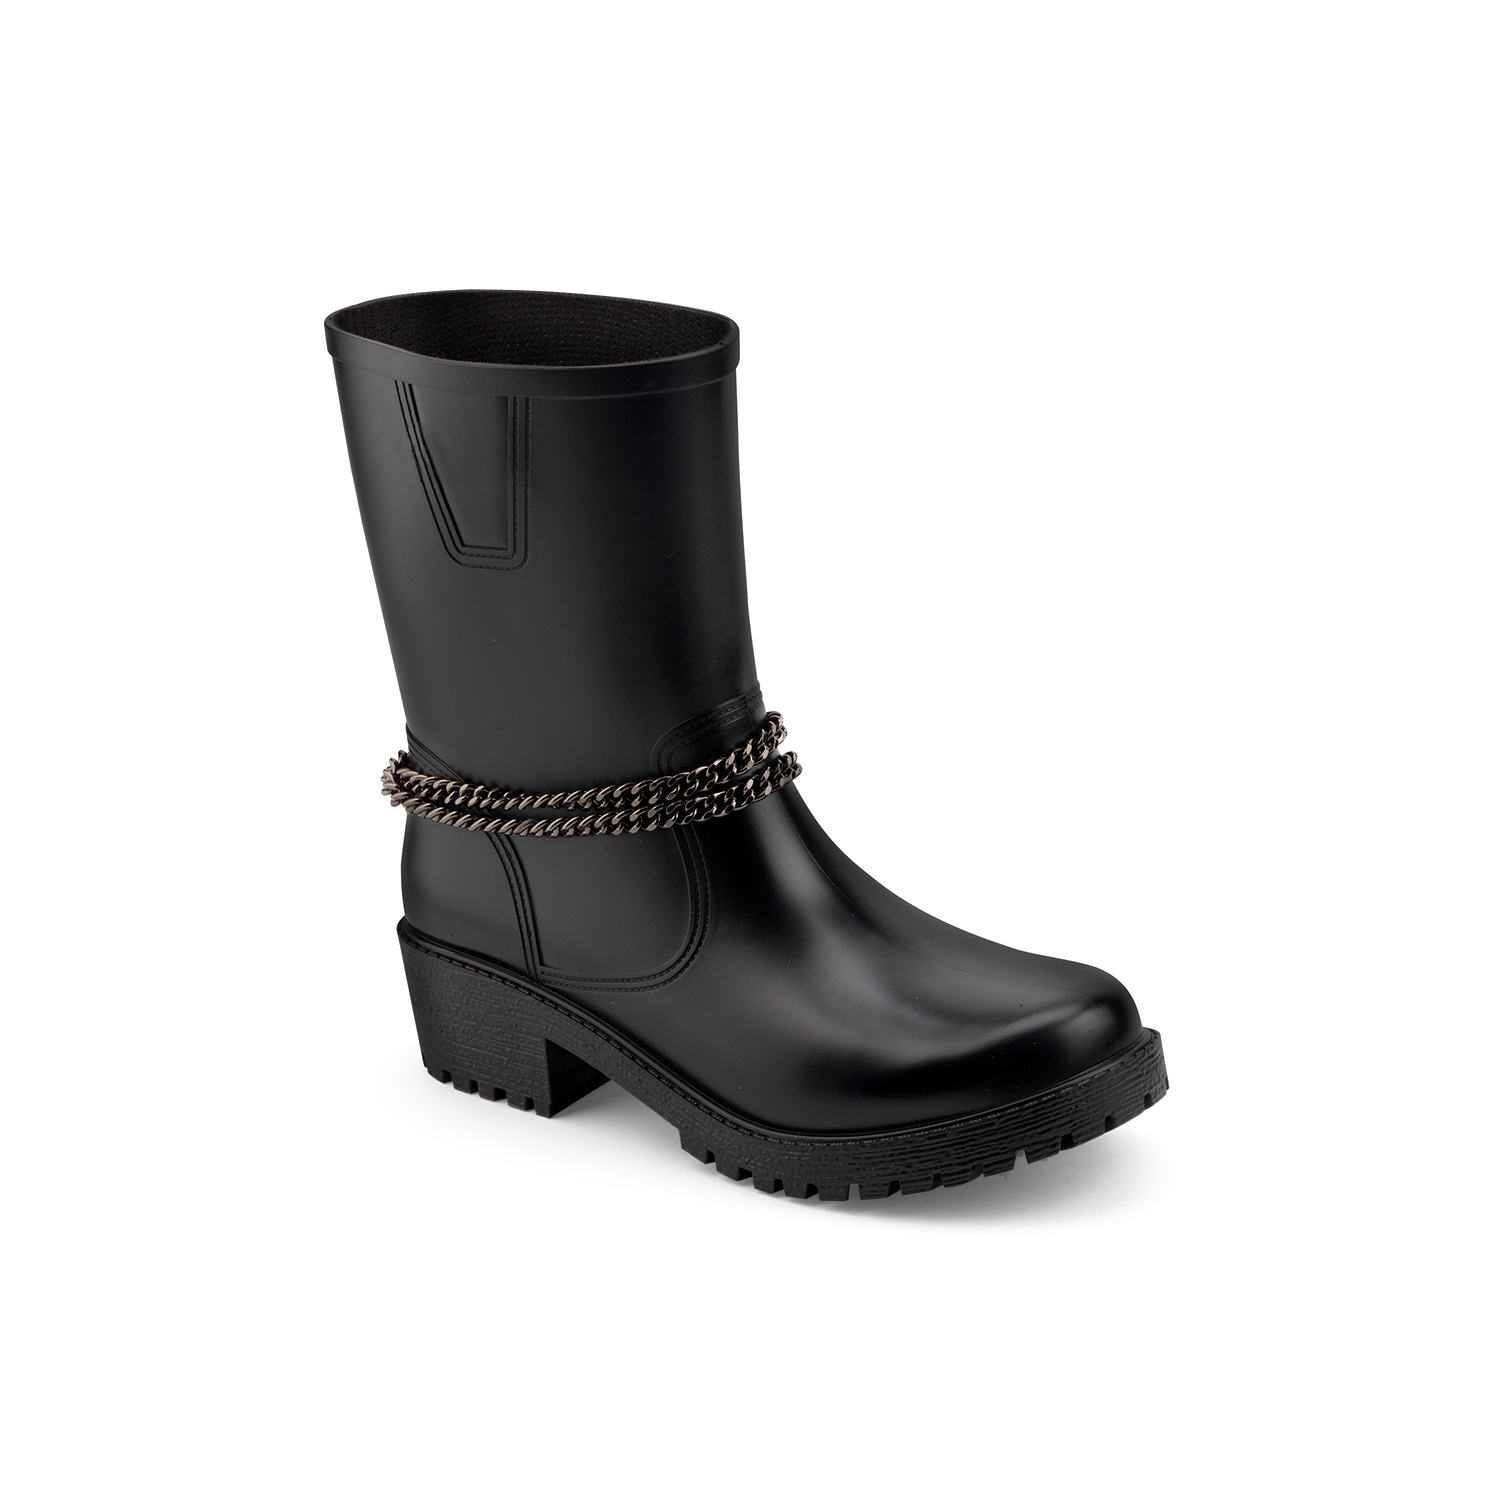 Matt finish pvc biker boot model with ankle double chain. Made in Italy